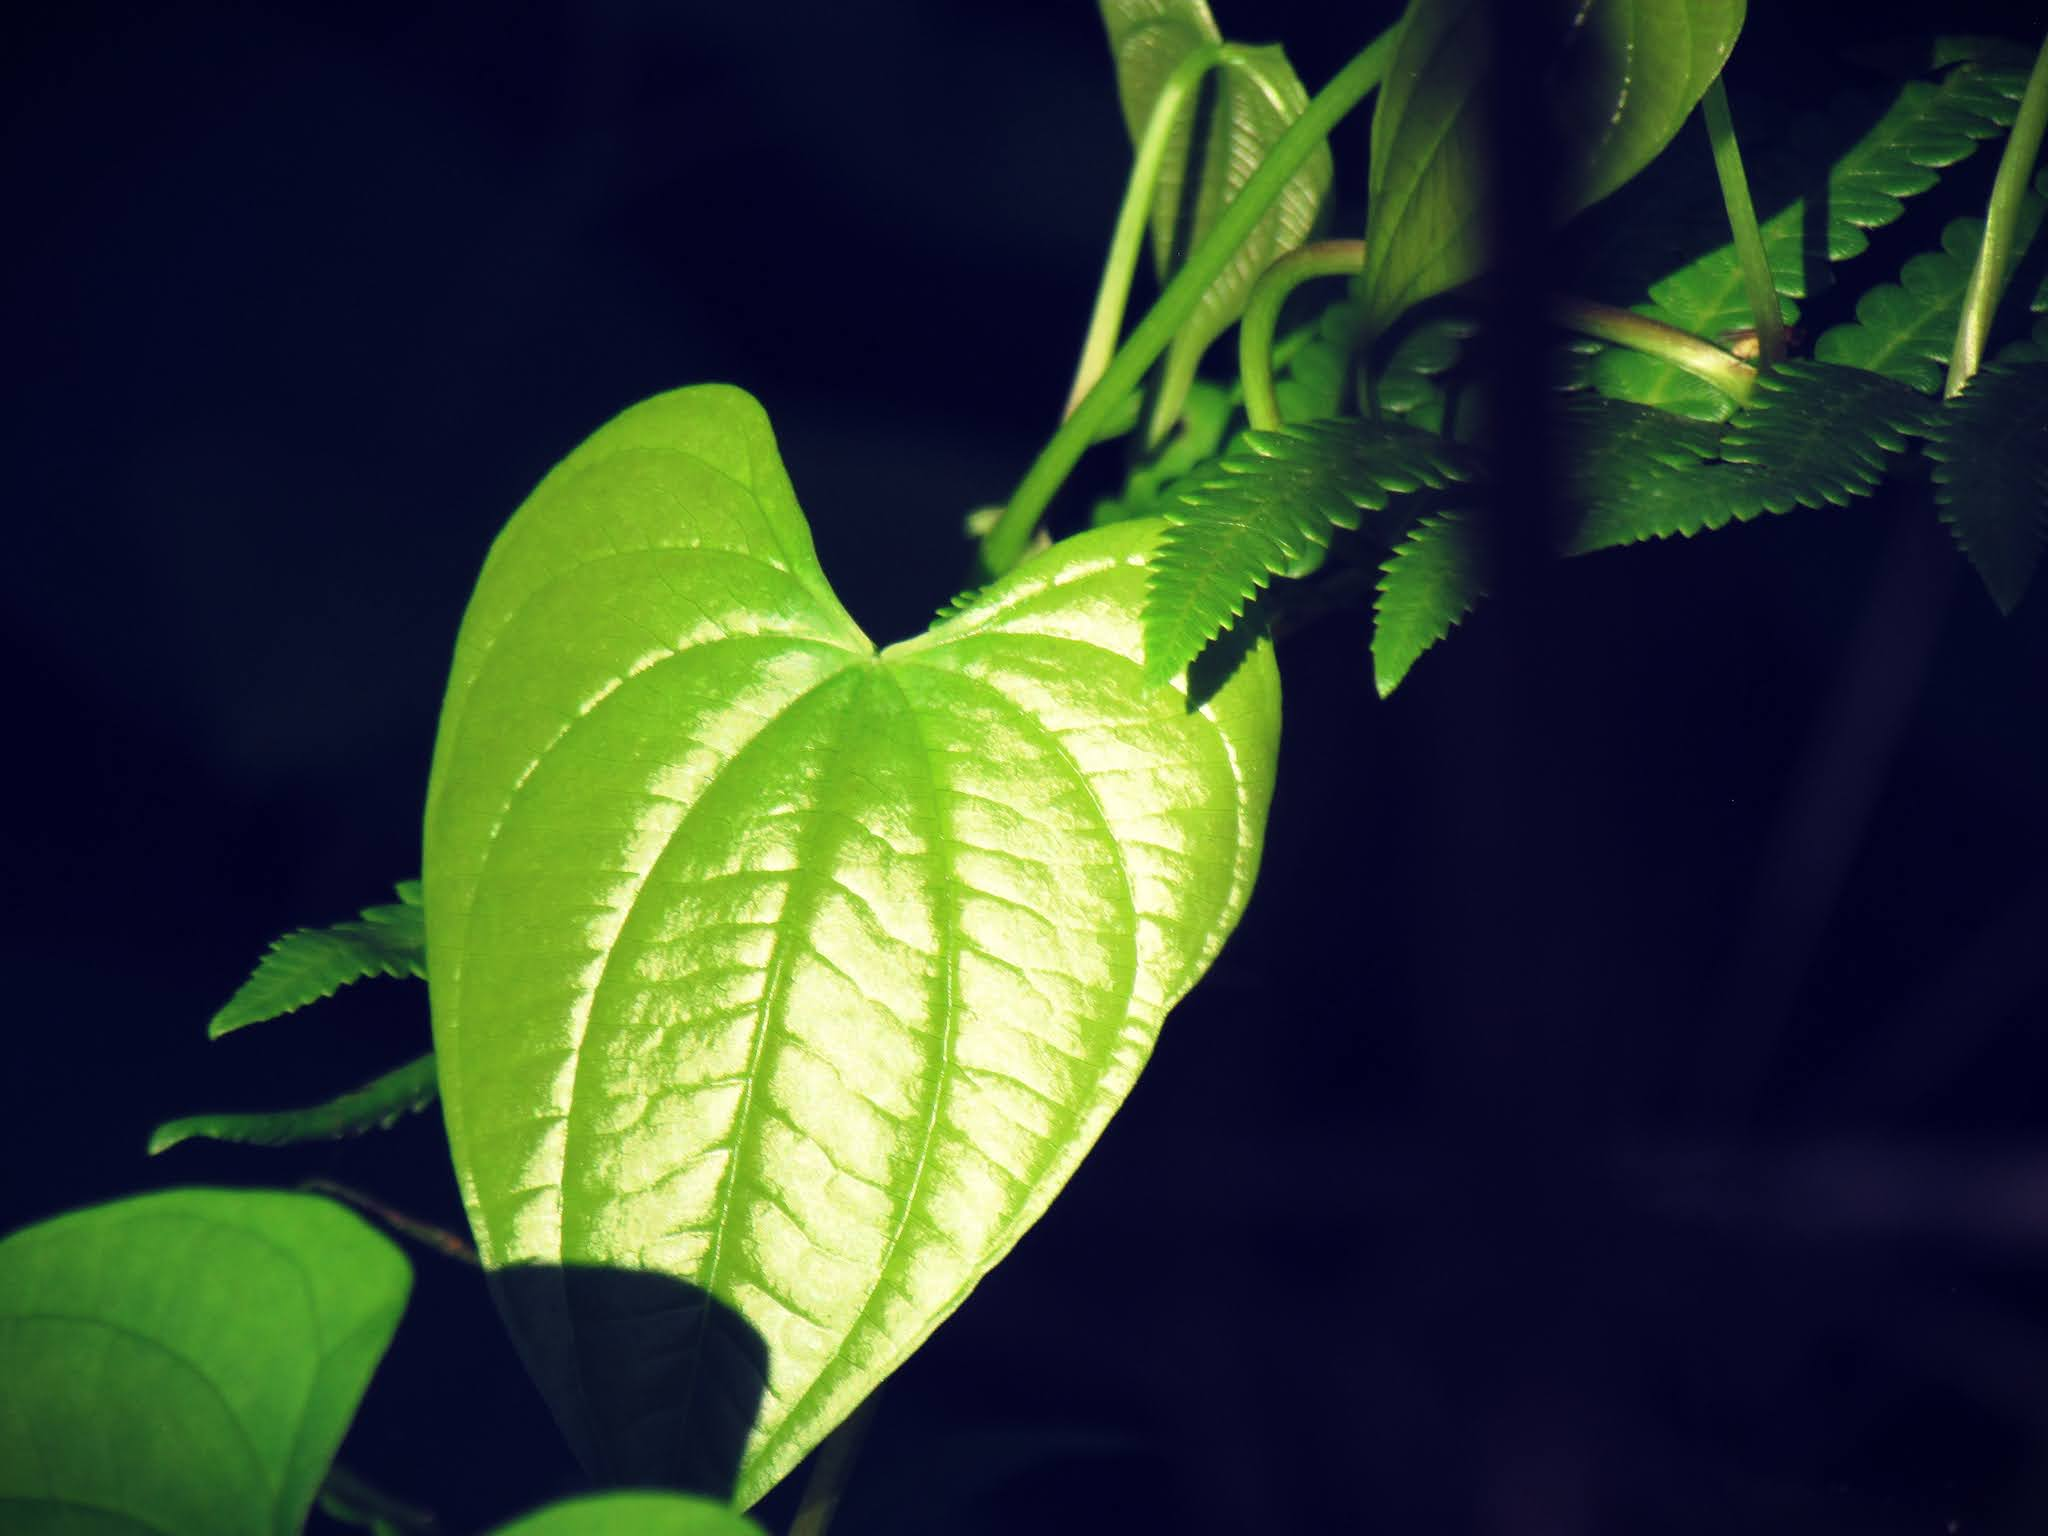 An emerald green, heart-shaped leaf in the heart of a faery forest with enchanted woodland energy